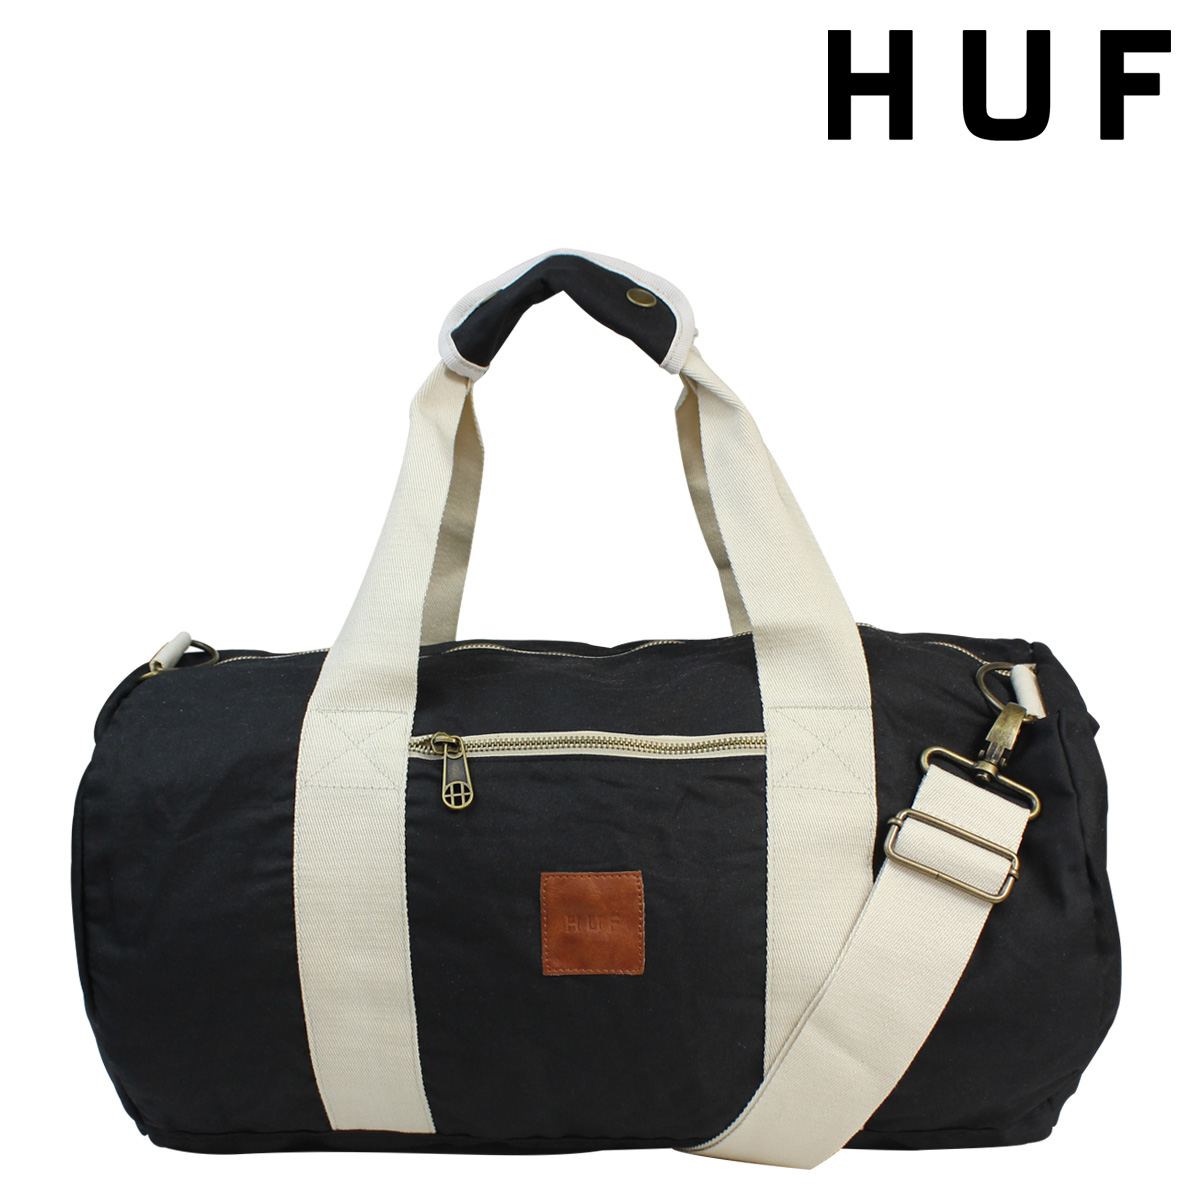 ALLSPORTS | Rakuten Global Market: Hough HUF mens Boston bag ...